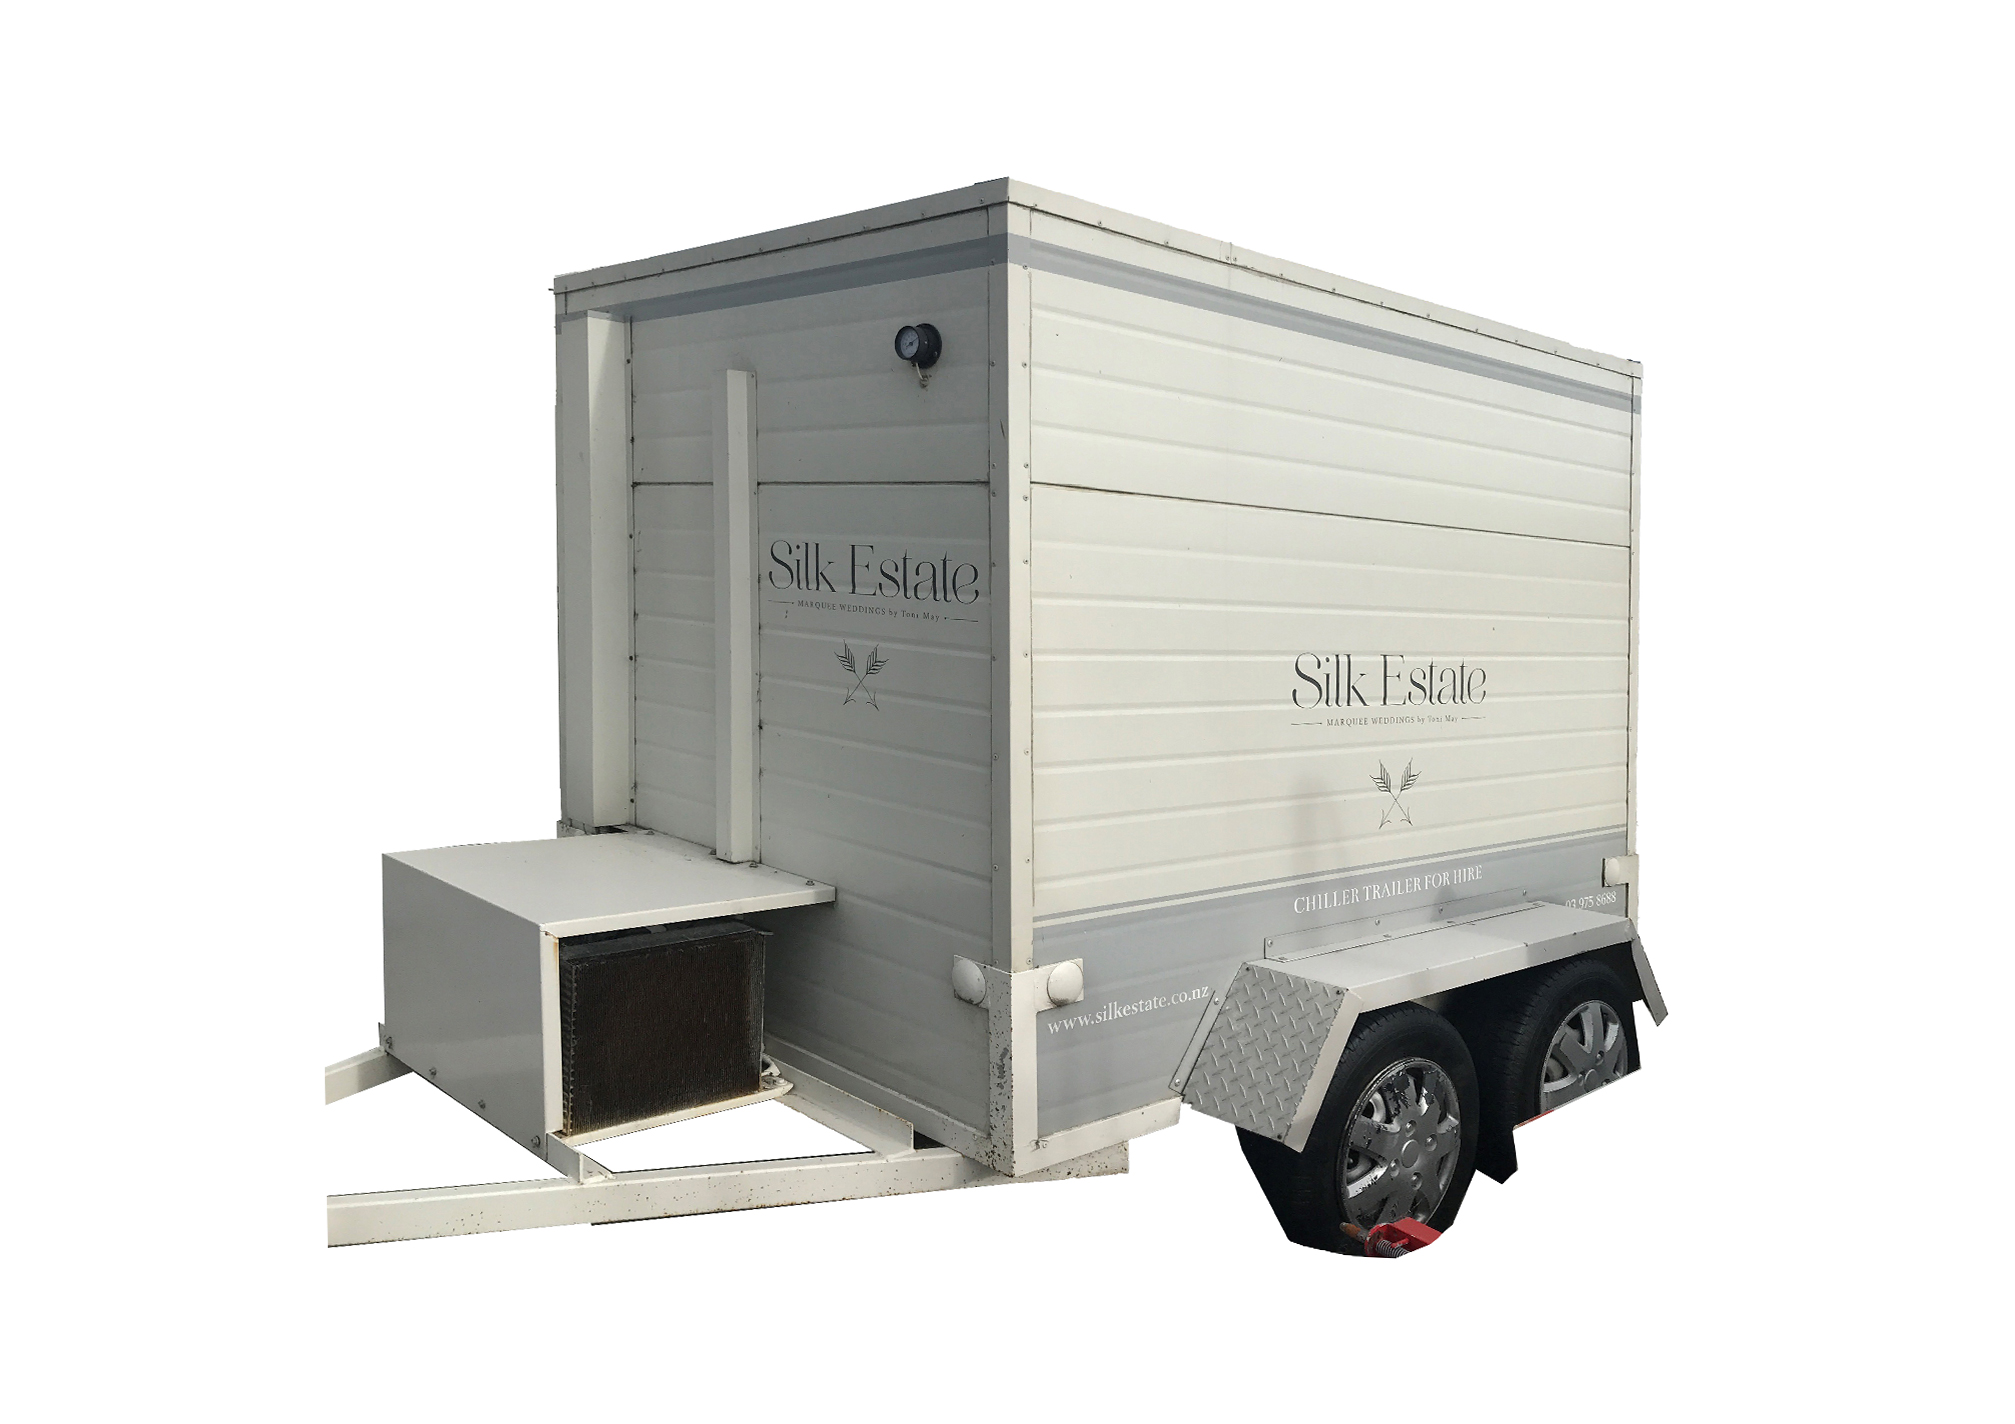 silk-estate-marquee-weddings-and-events-styling-and-hire-trailers-chiller-trailer-3